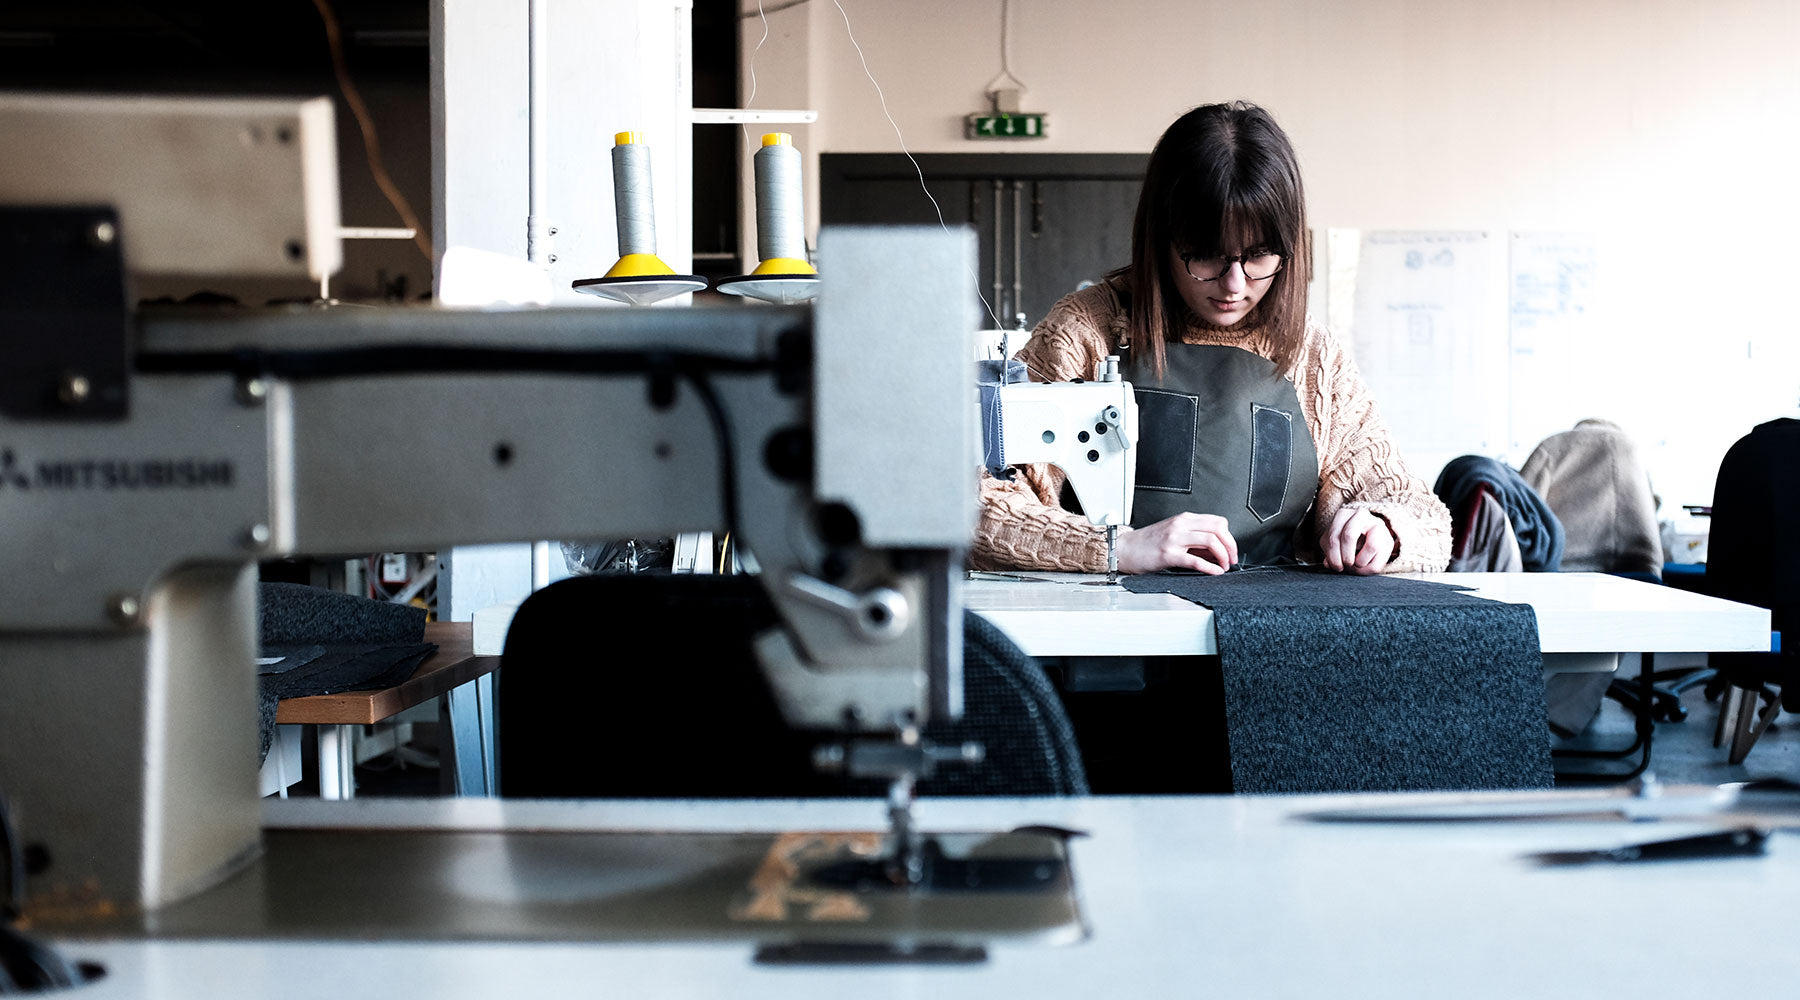 trakke machinist working on a bag at a sewing machine